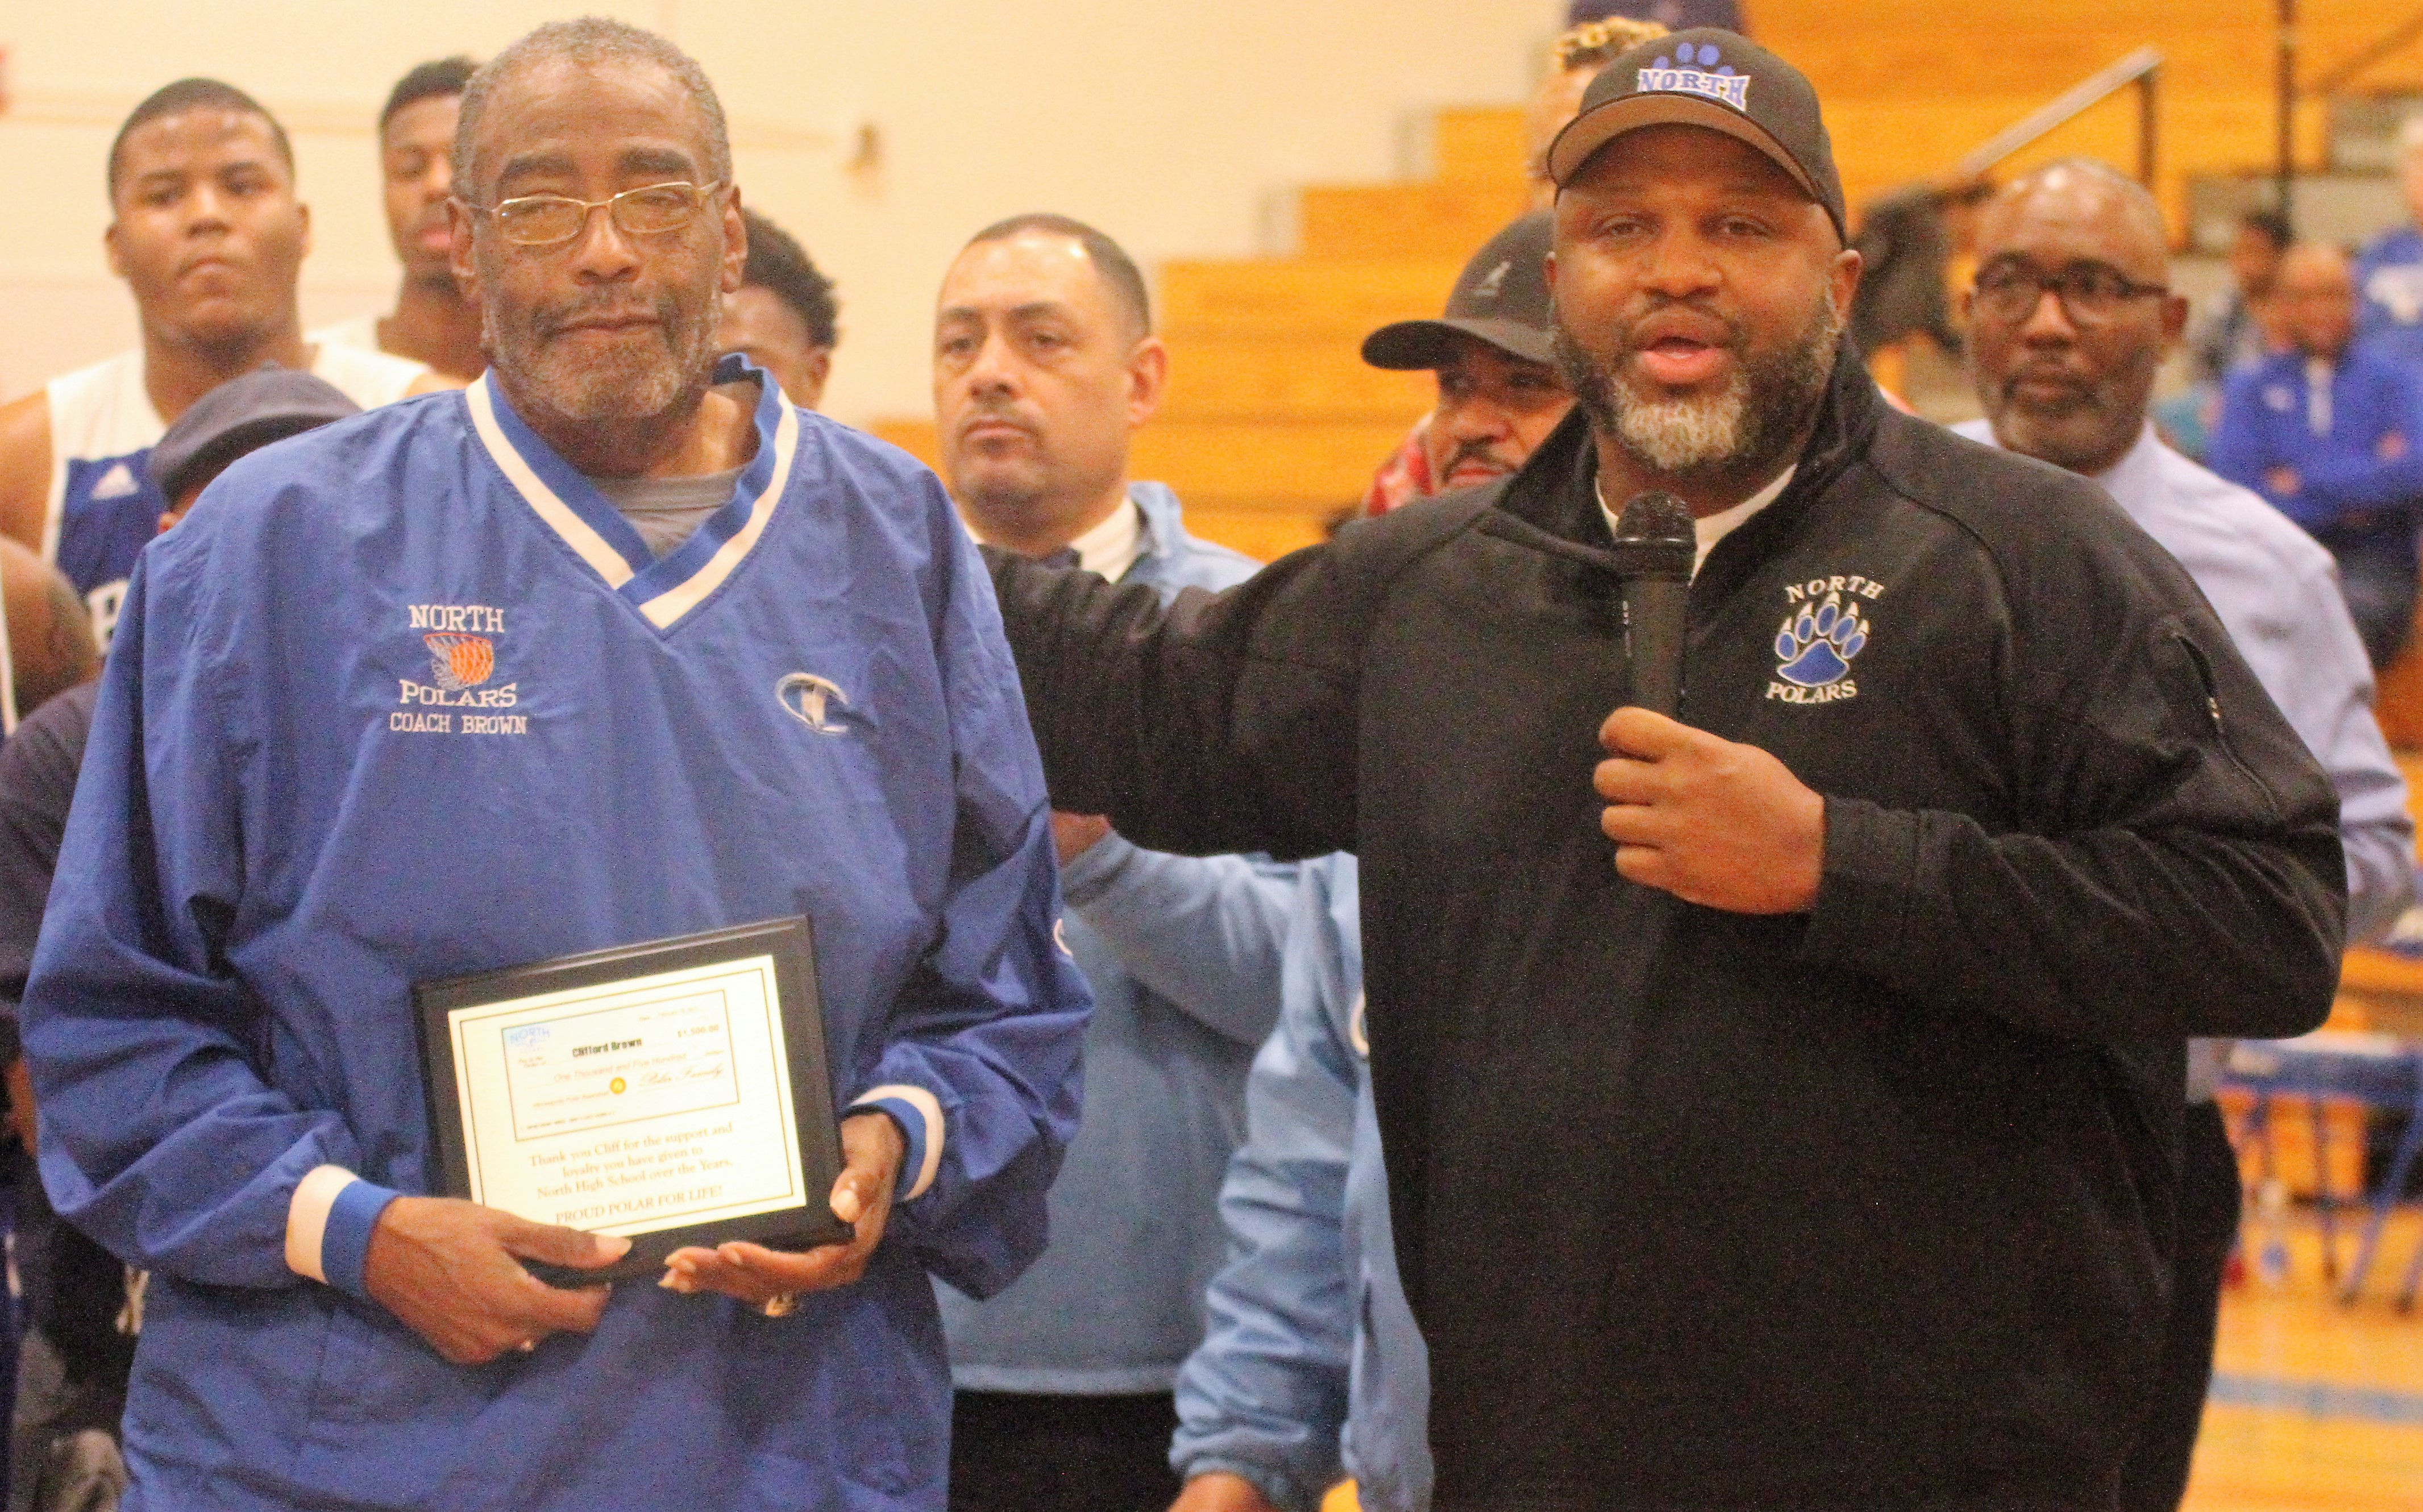 Former coach honored at Minneapolis North | MN Spokesman-Recorder